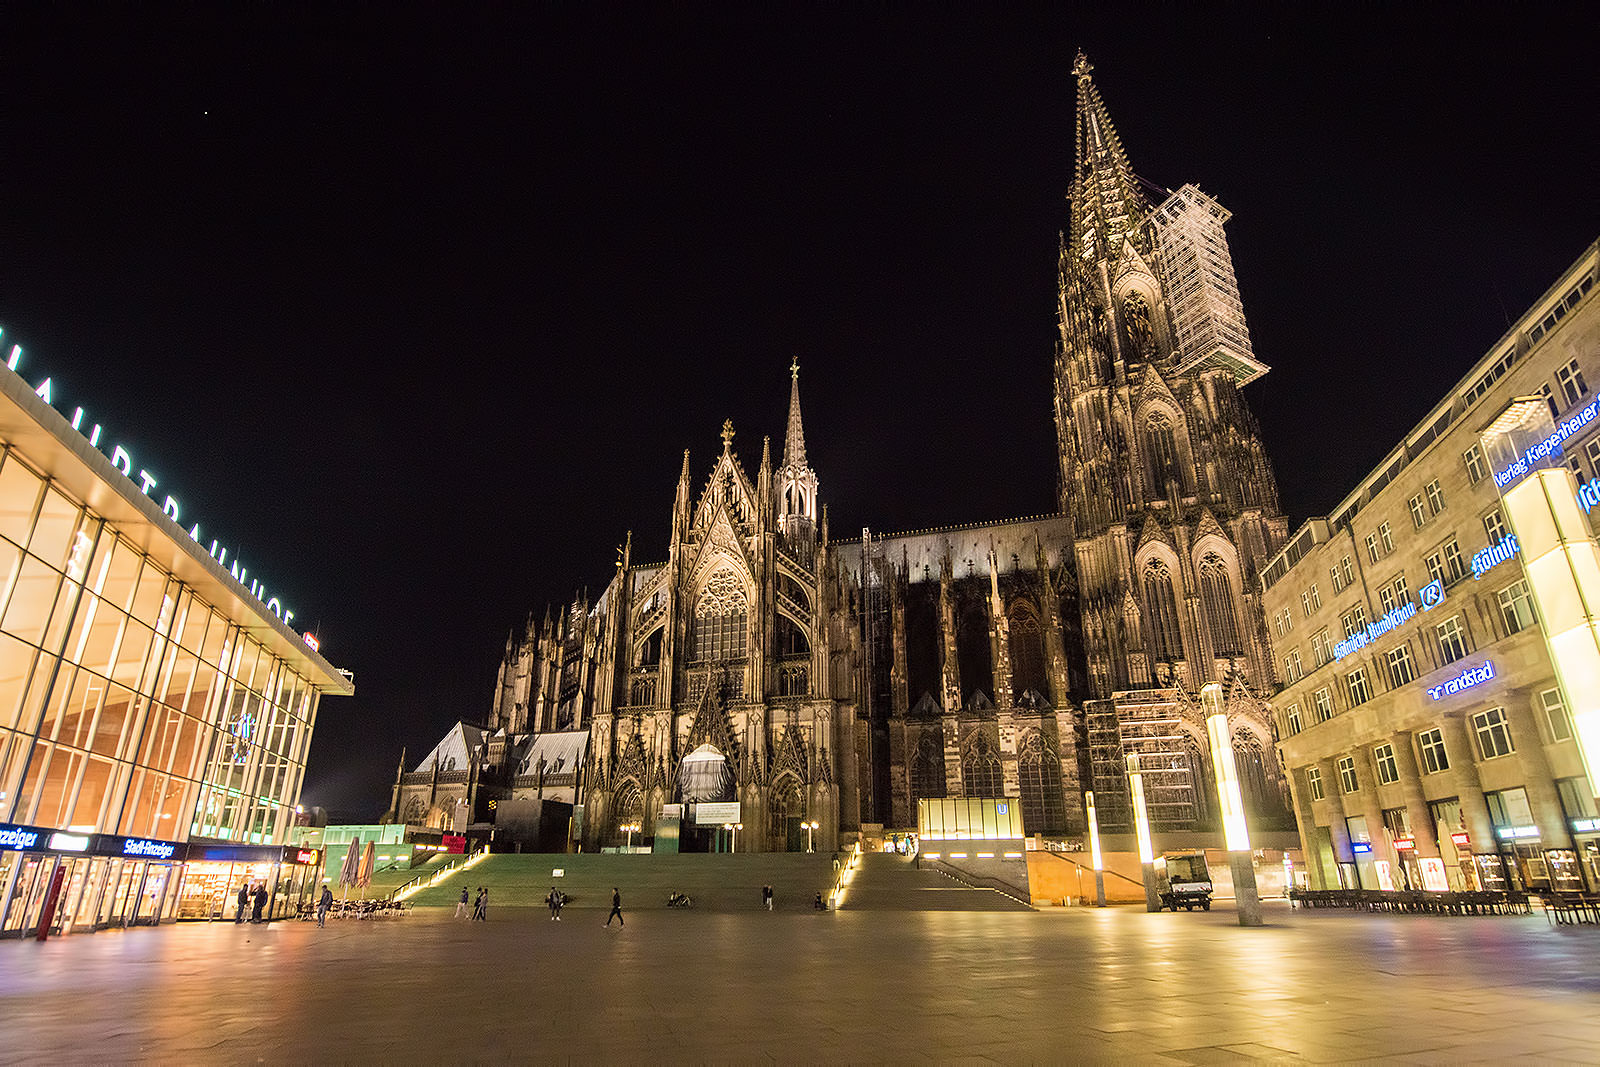 Trodelmarkt Koln 10 Things To Do In Cologne On A Small Budget Holidays In Cologne